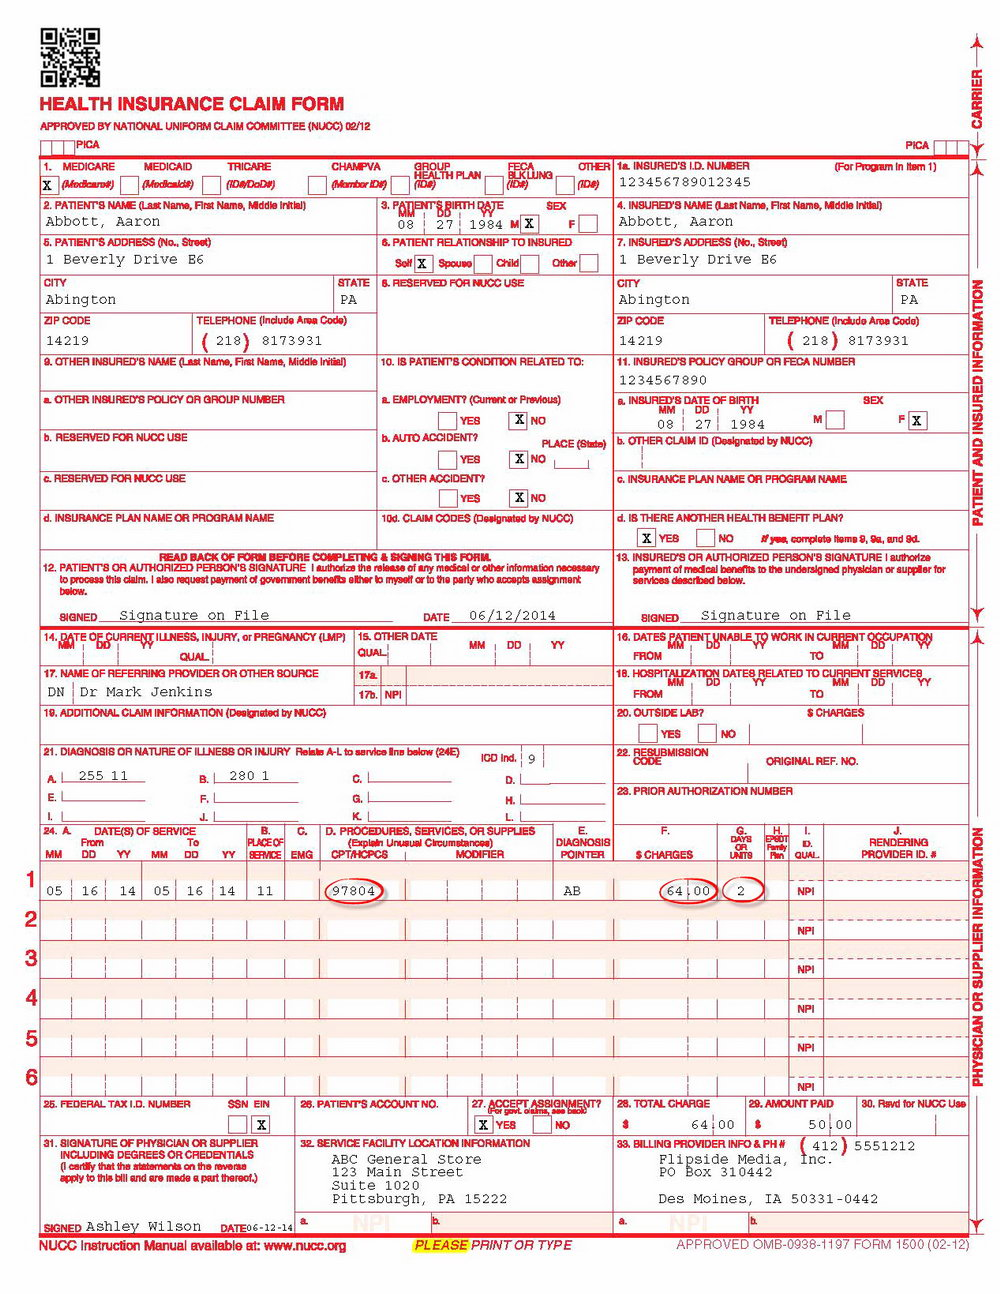 Cms 1500 Form Instructions 2015